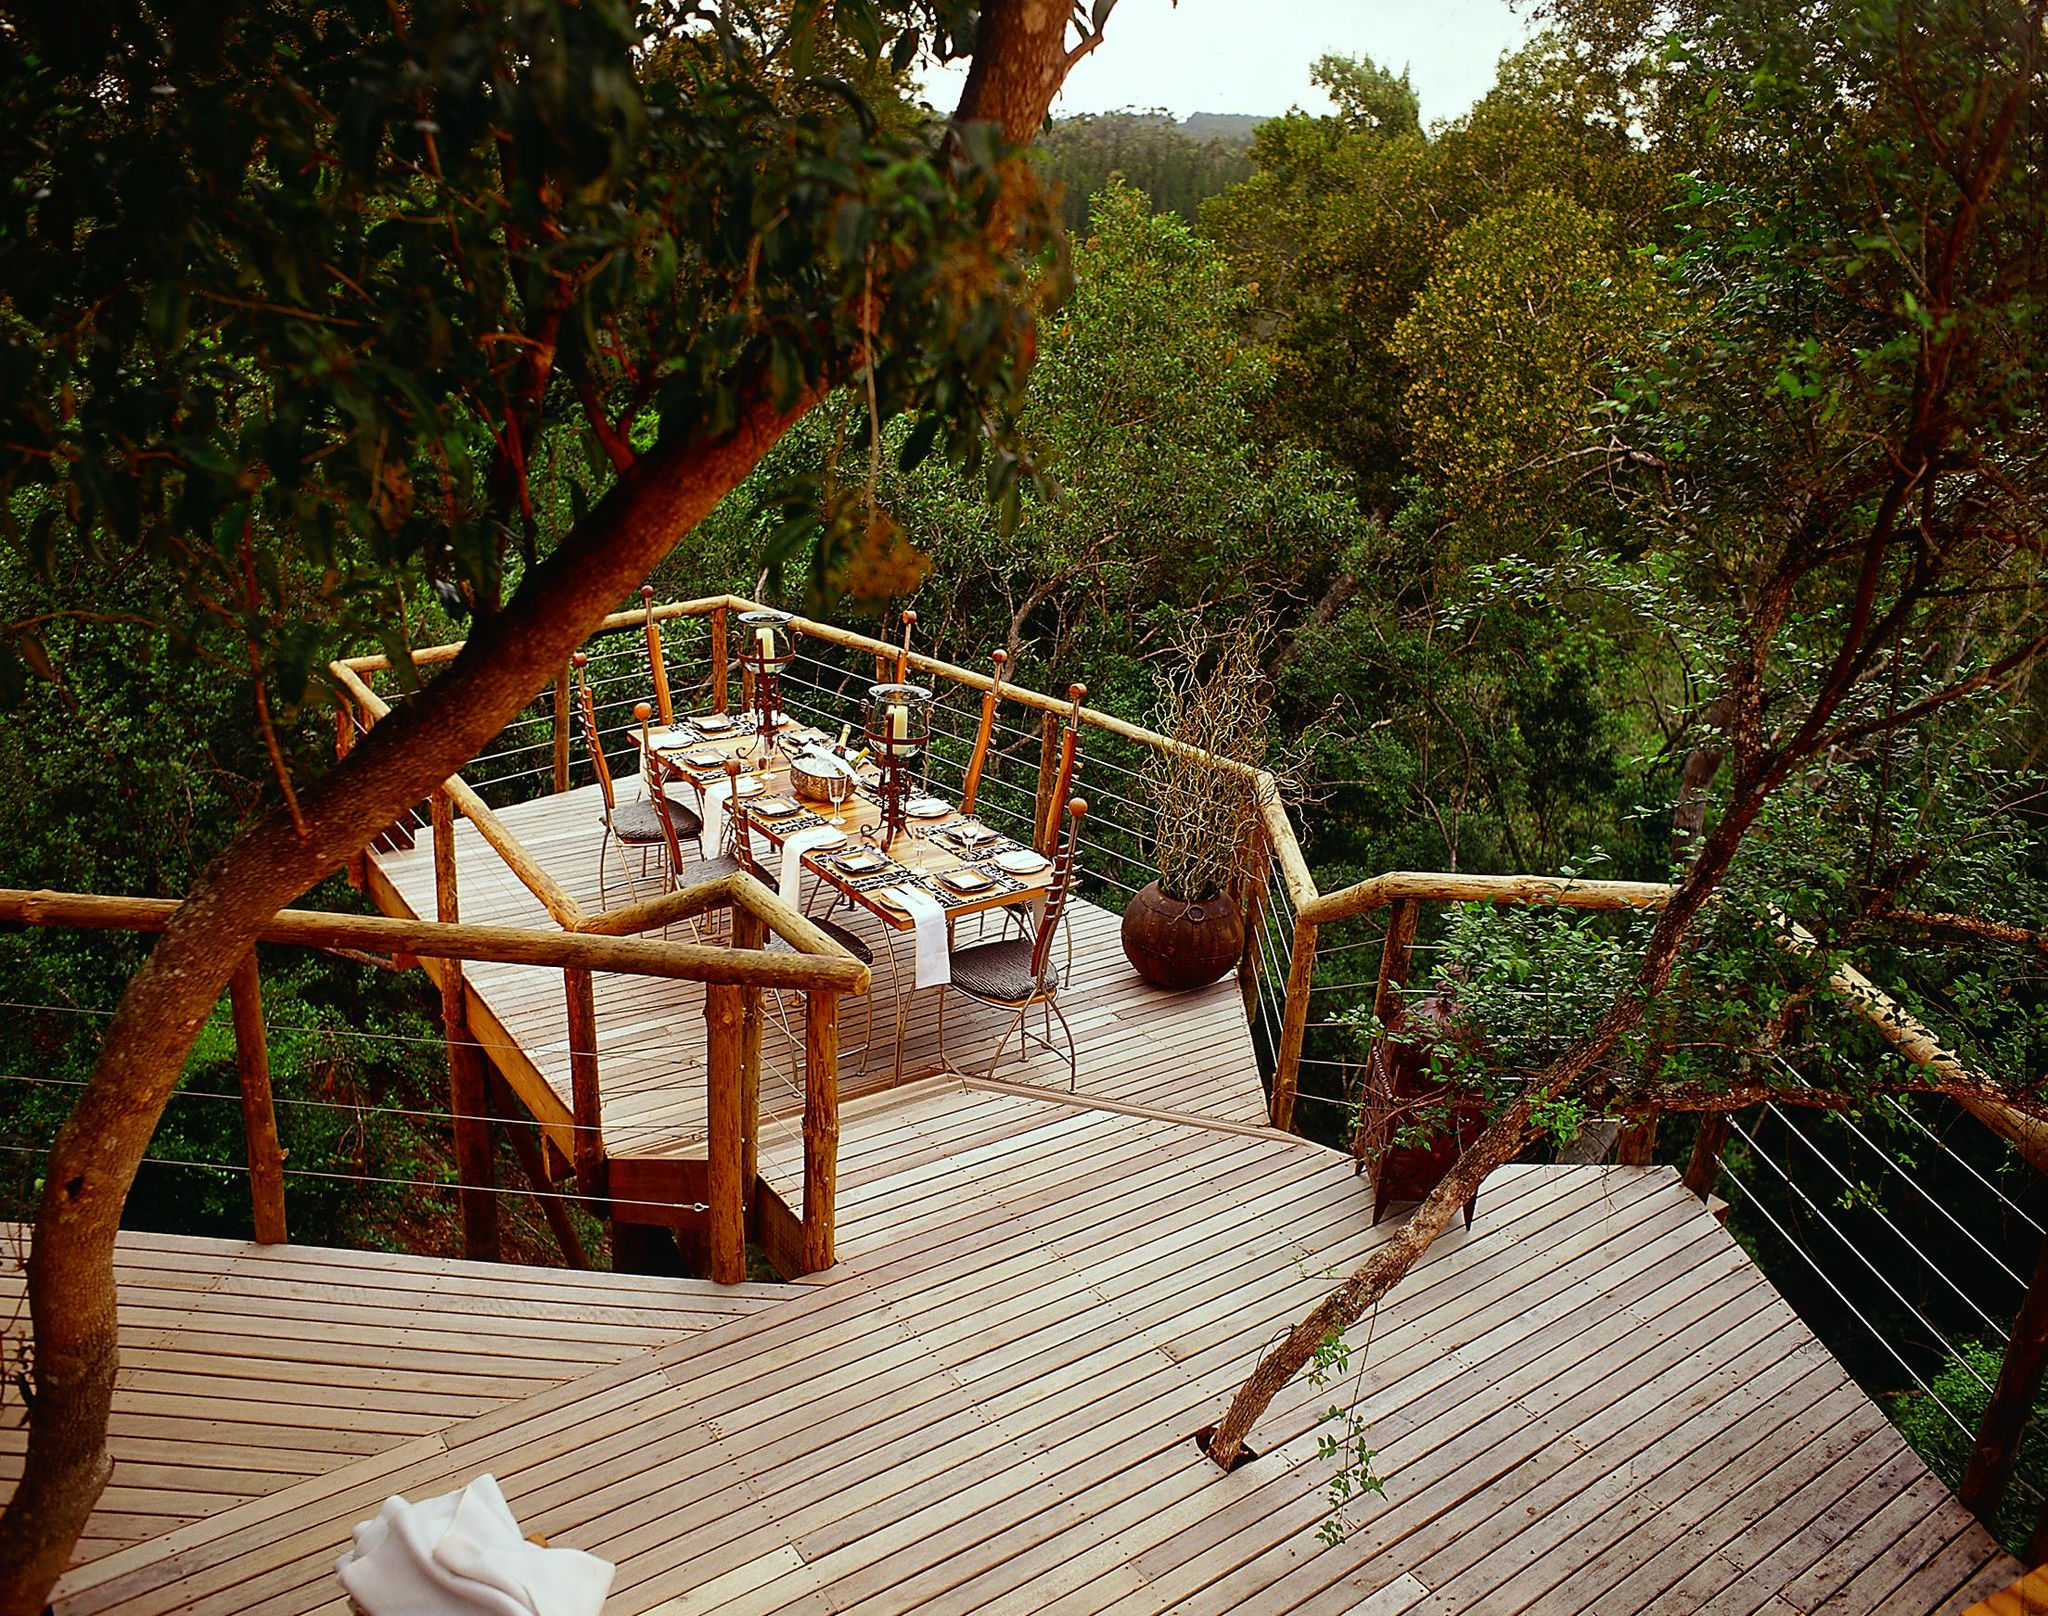 Picturesque The  Best Places To Stay In The Garden Route  Rhino Africa Blog With Engaging Lying Between Knysna And Plett Tsalas Suites And Villas Are Tucked Away  Among The Leaves About Six Metres Above The Forest Floor And  Interconnected By  With Appealing How To Design A Garden Layout Also Brighton Racecourse Garden Centre In Addition Heathrow Garden Centre And Botanical Gardens Bath As Well As Winter Gardens Sunderland Additionally Urban Gardening Meaning From Blogrhinoafricacom With   Engaging The  Best Places To Stay In The Garden Route  Rhino Africa Blog With Appealing Lying Between Knysna And Plett Tsalas Suites And Villas Are Tucked Away  Among The Leaves About Six Metres Above The Forest Floor And  Interconnected By  And Picturesque How To Design A Garden Layout Also Brighton Racecourse Garden Centre In Addition Heathrow Garden Centre From Blogrhinoafricacom